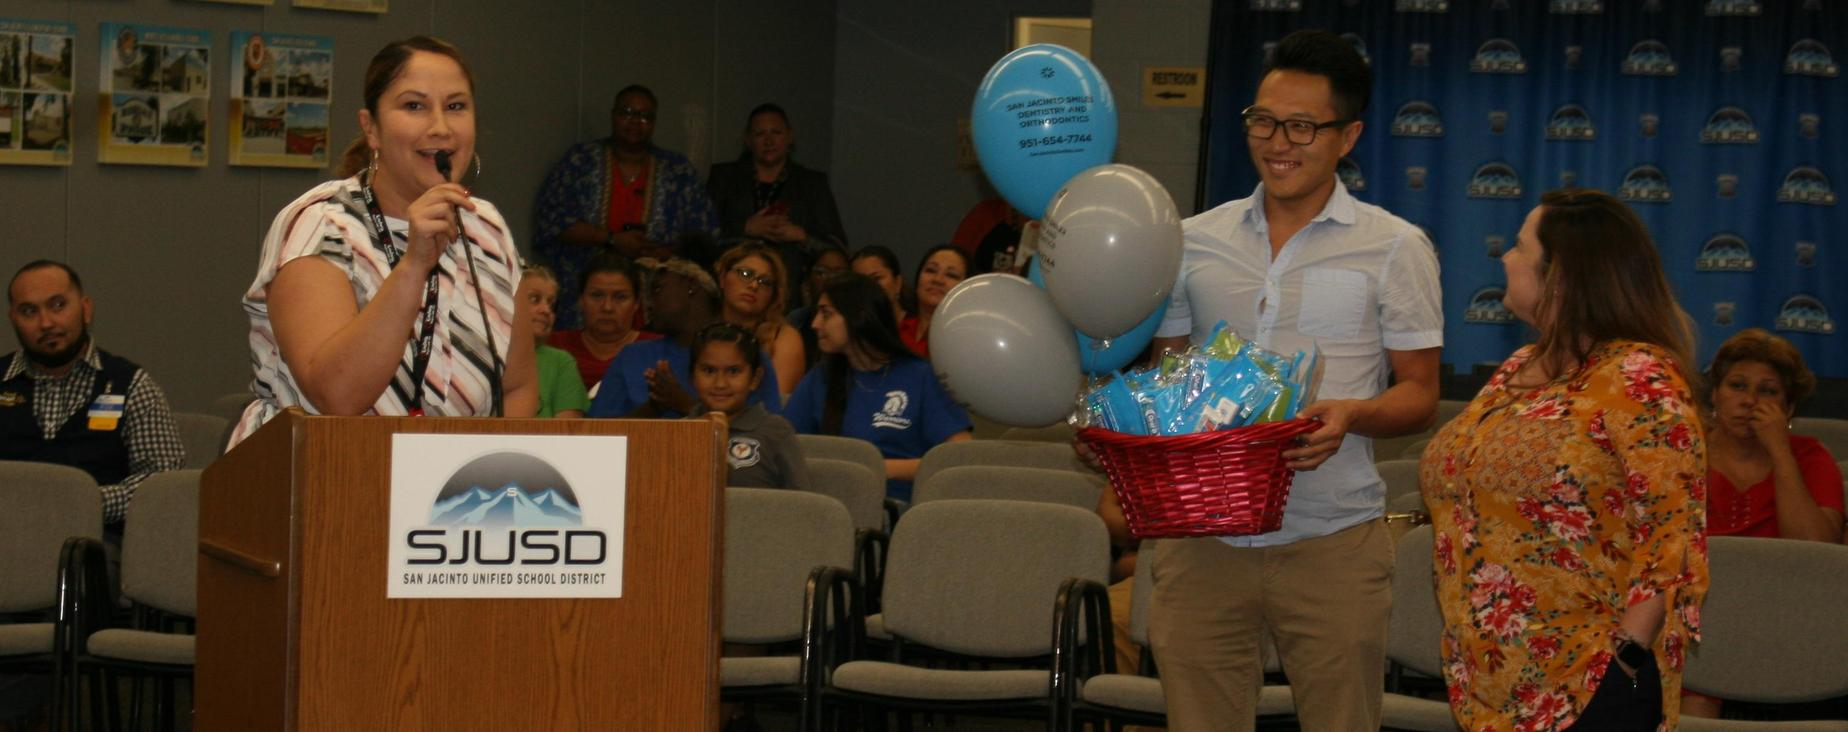 Community Engagement Specialist Cara Adame recognizes San Jacinto Smiles Dentistry for their donations and support of SJUSD students and families.